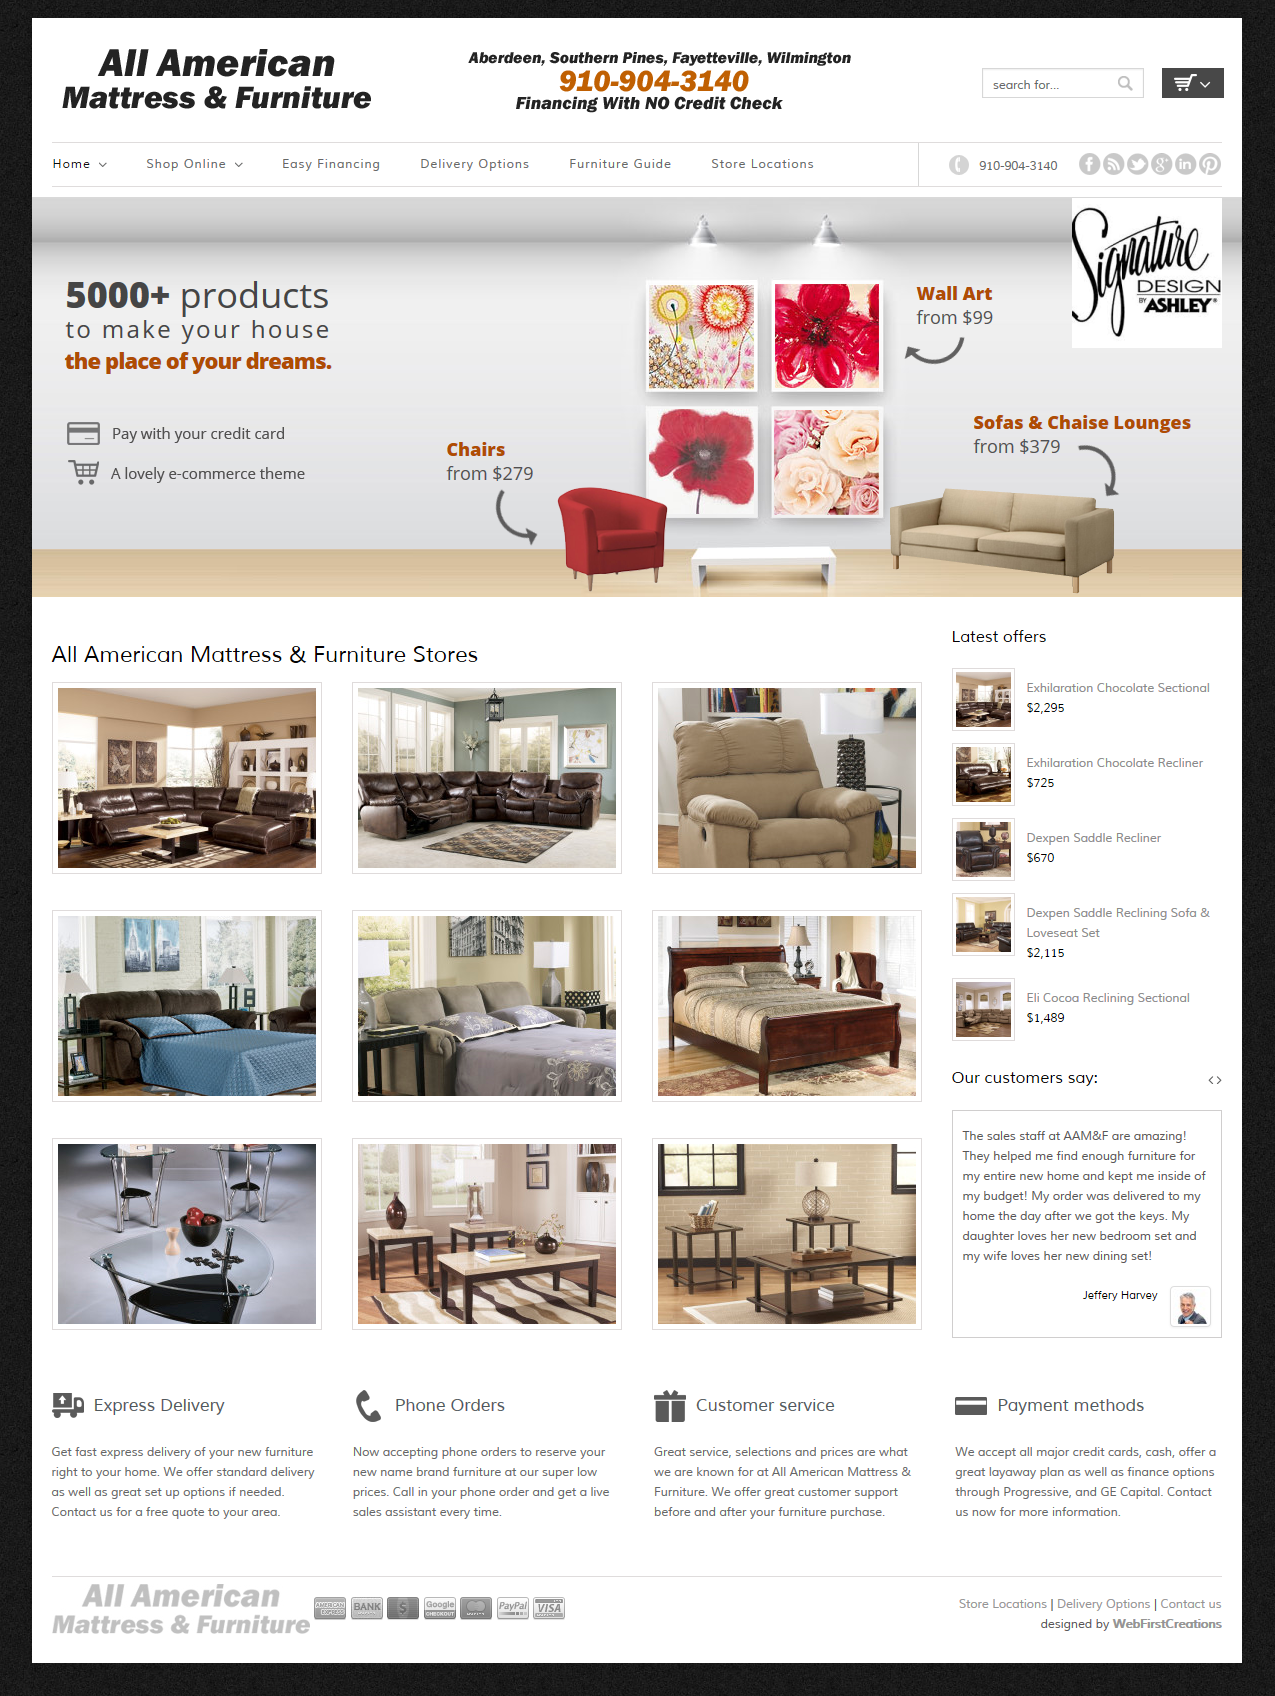 Exceptionnel New Shopping Cart Site For All American Mattress U0026 Furniture Of Aberdeen NC